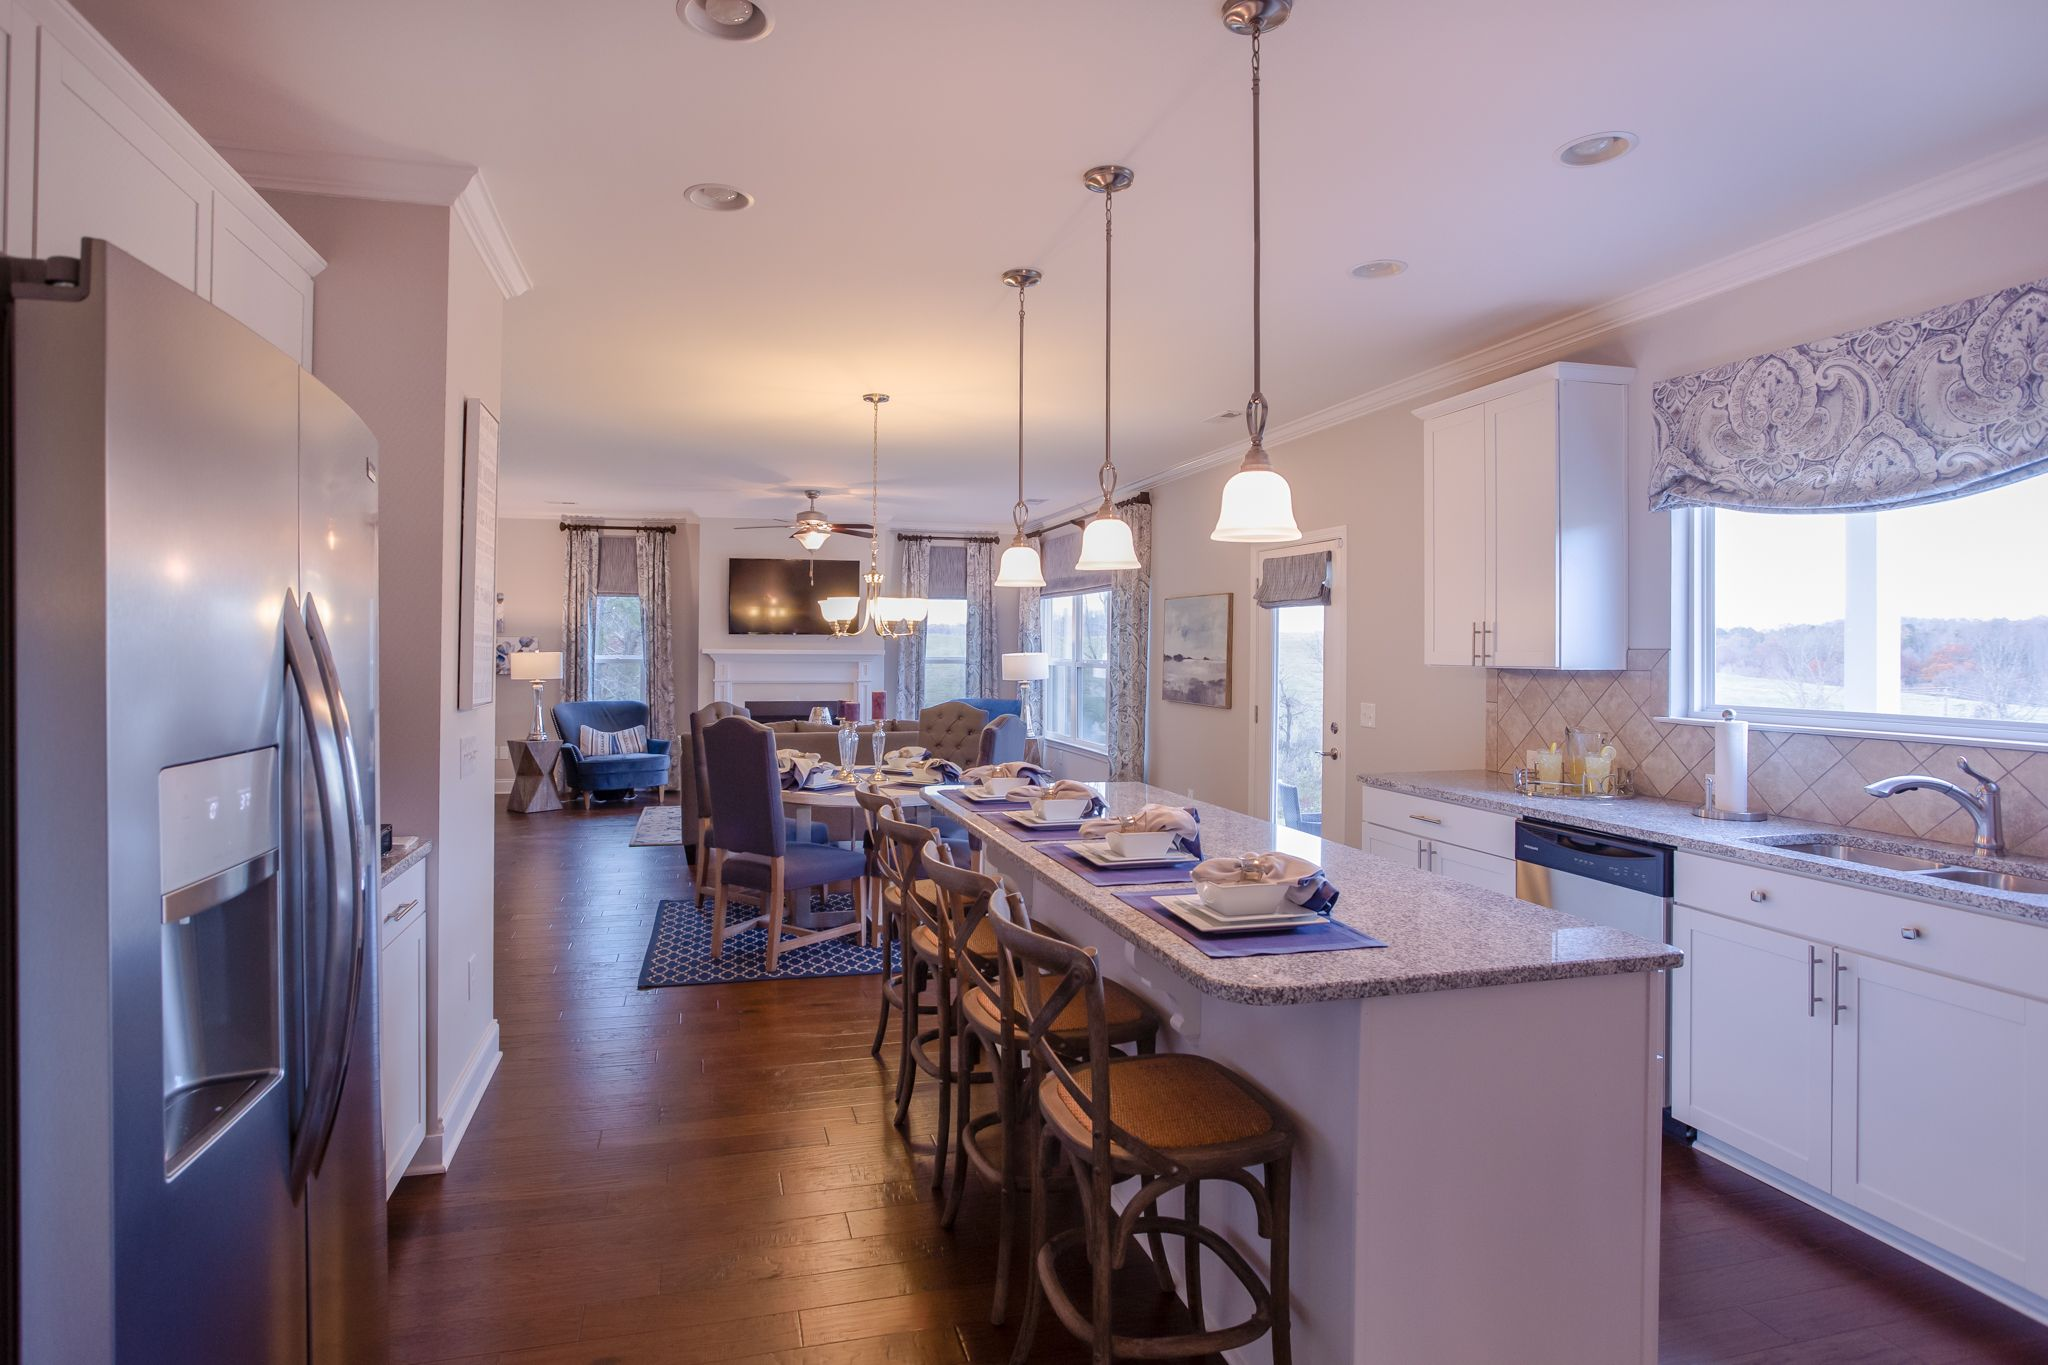 Kitchen featured in The Alexandria By Goodall Homes in Chattanooga, TN